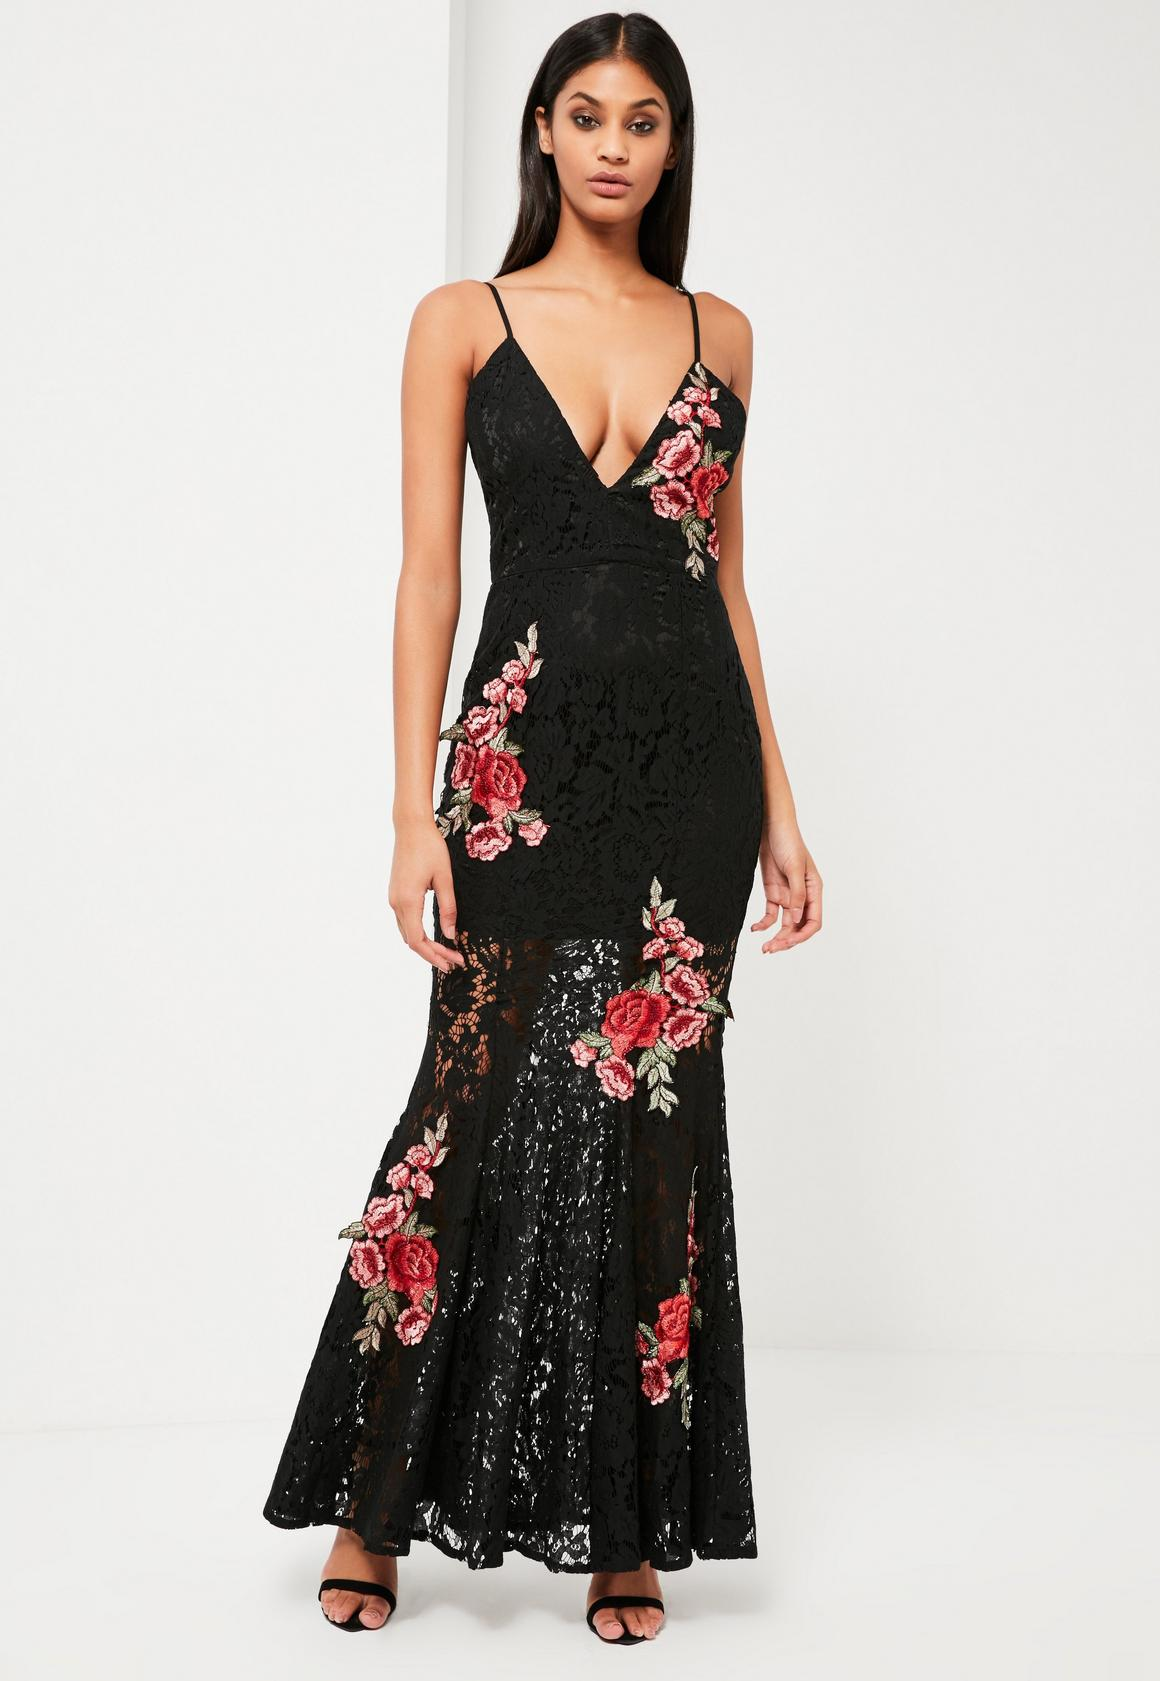 Gb embroidered maxi dress